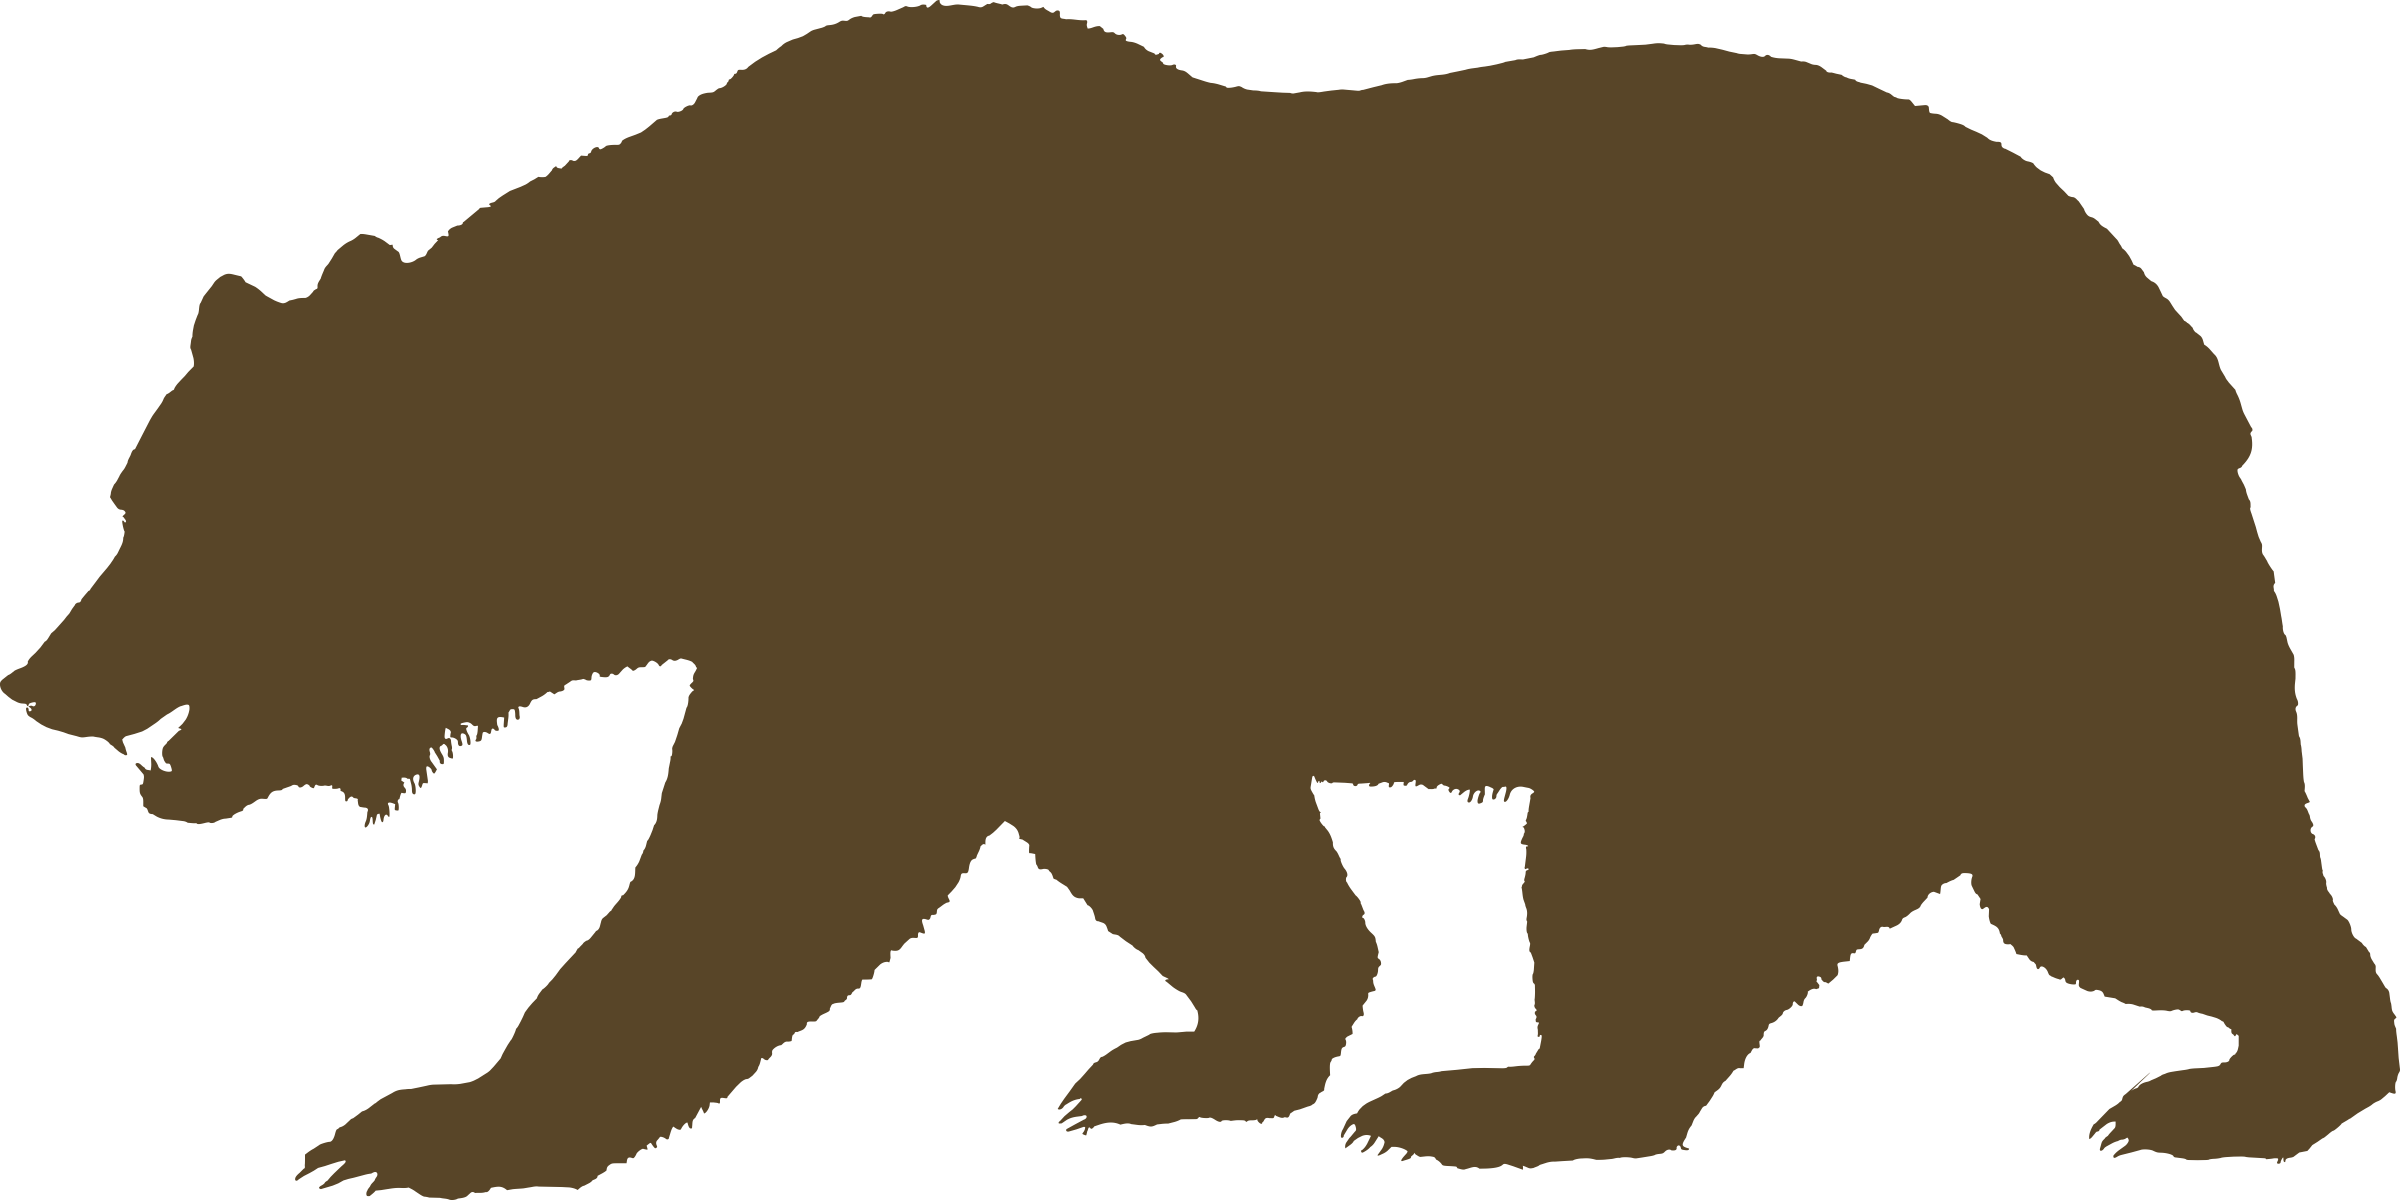 svg Bear clipart outline. Grizzly free on dumielauxepices